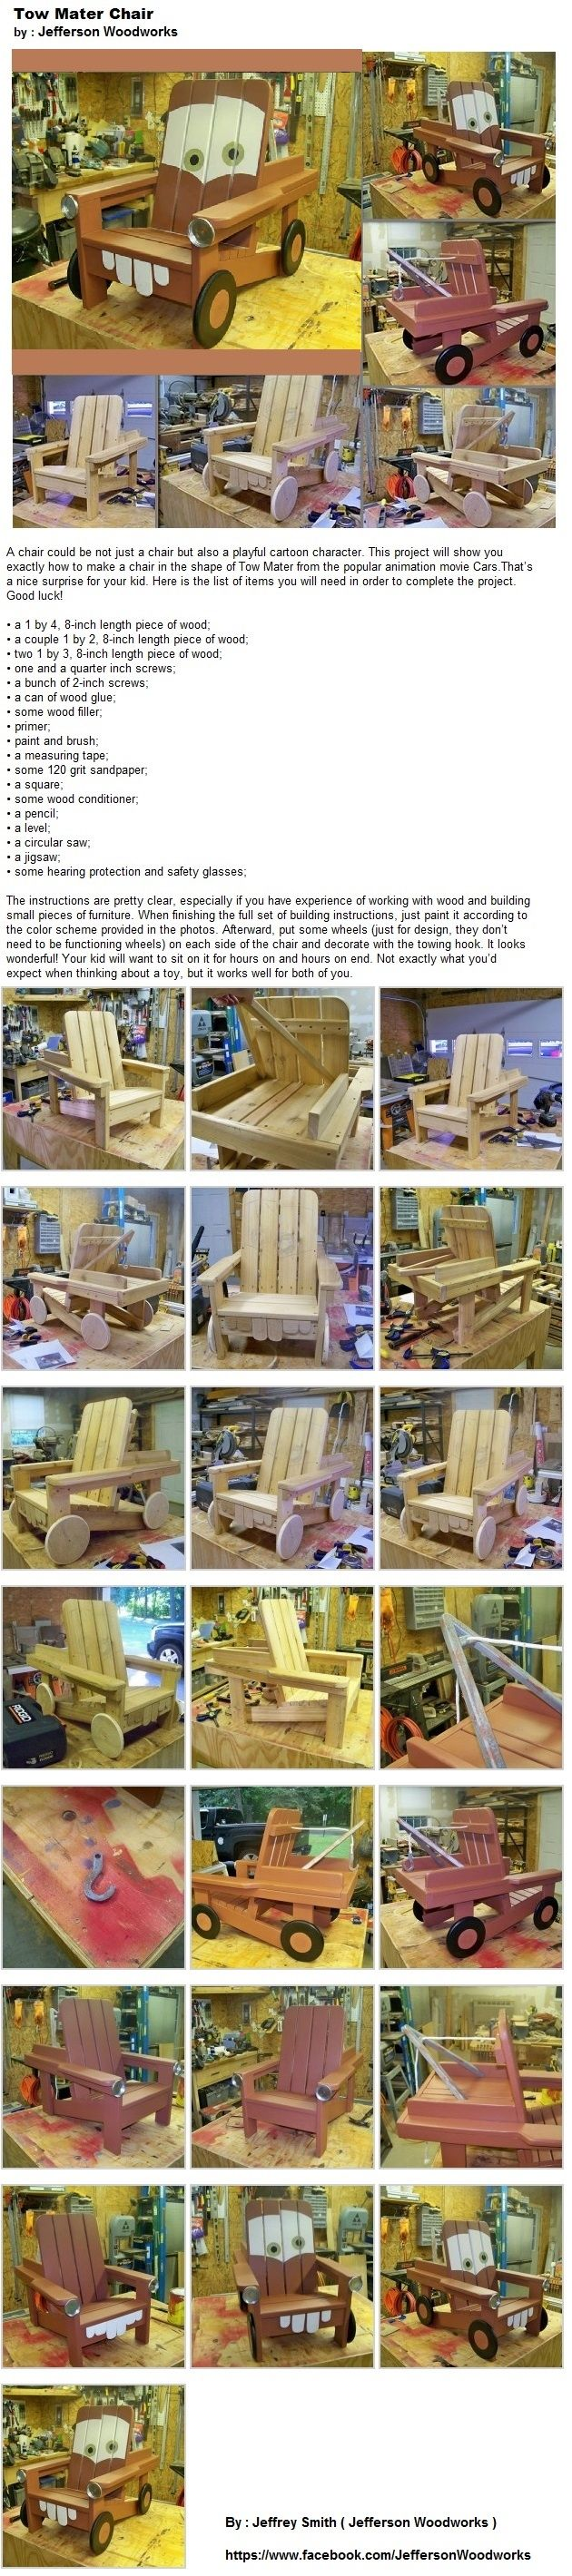 best handmade furniture and other projects images on